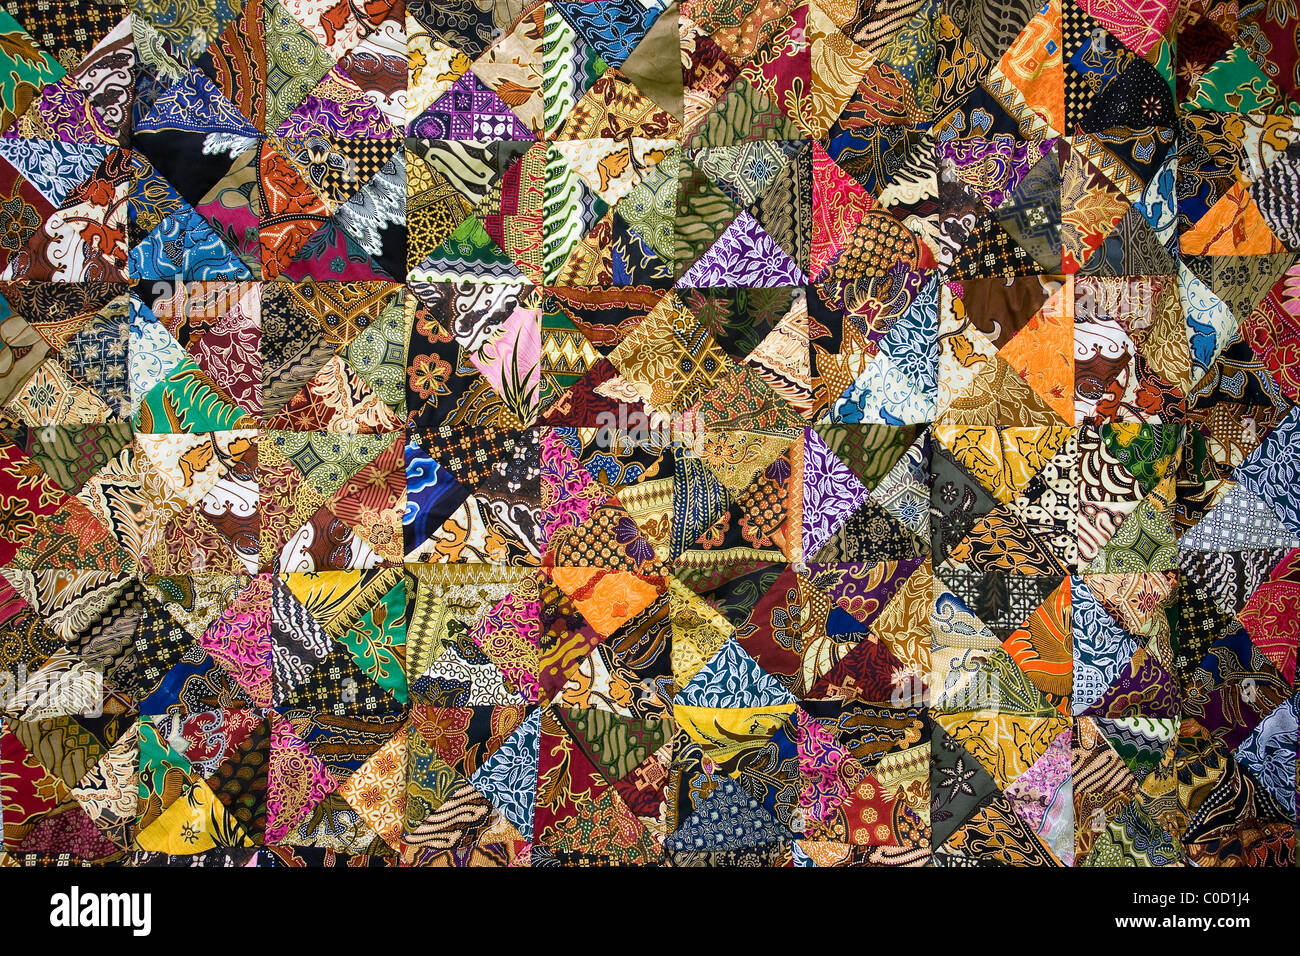 Balinese patchwork quilt, Bali, Indonesia. - Stock Image